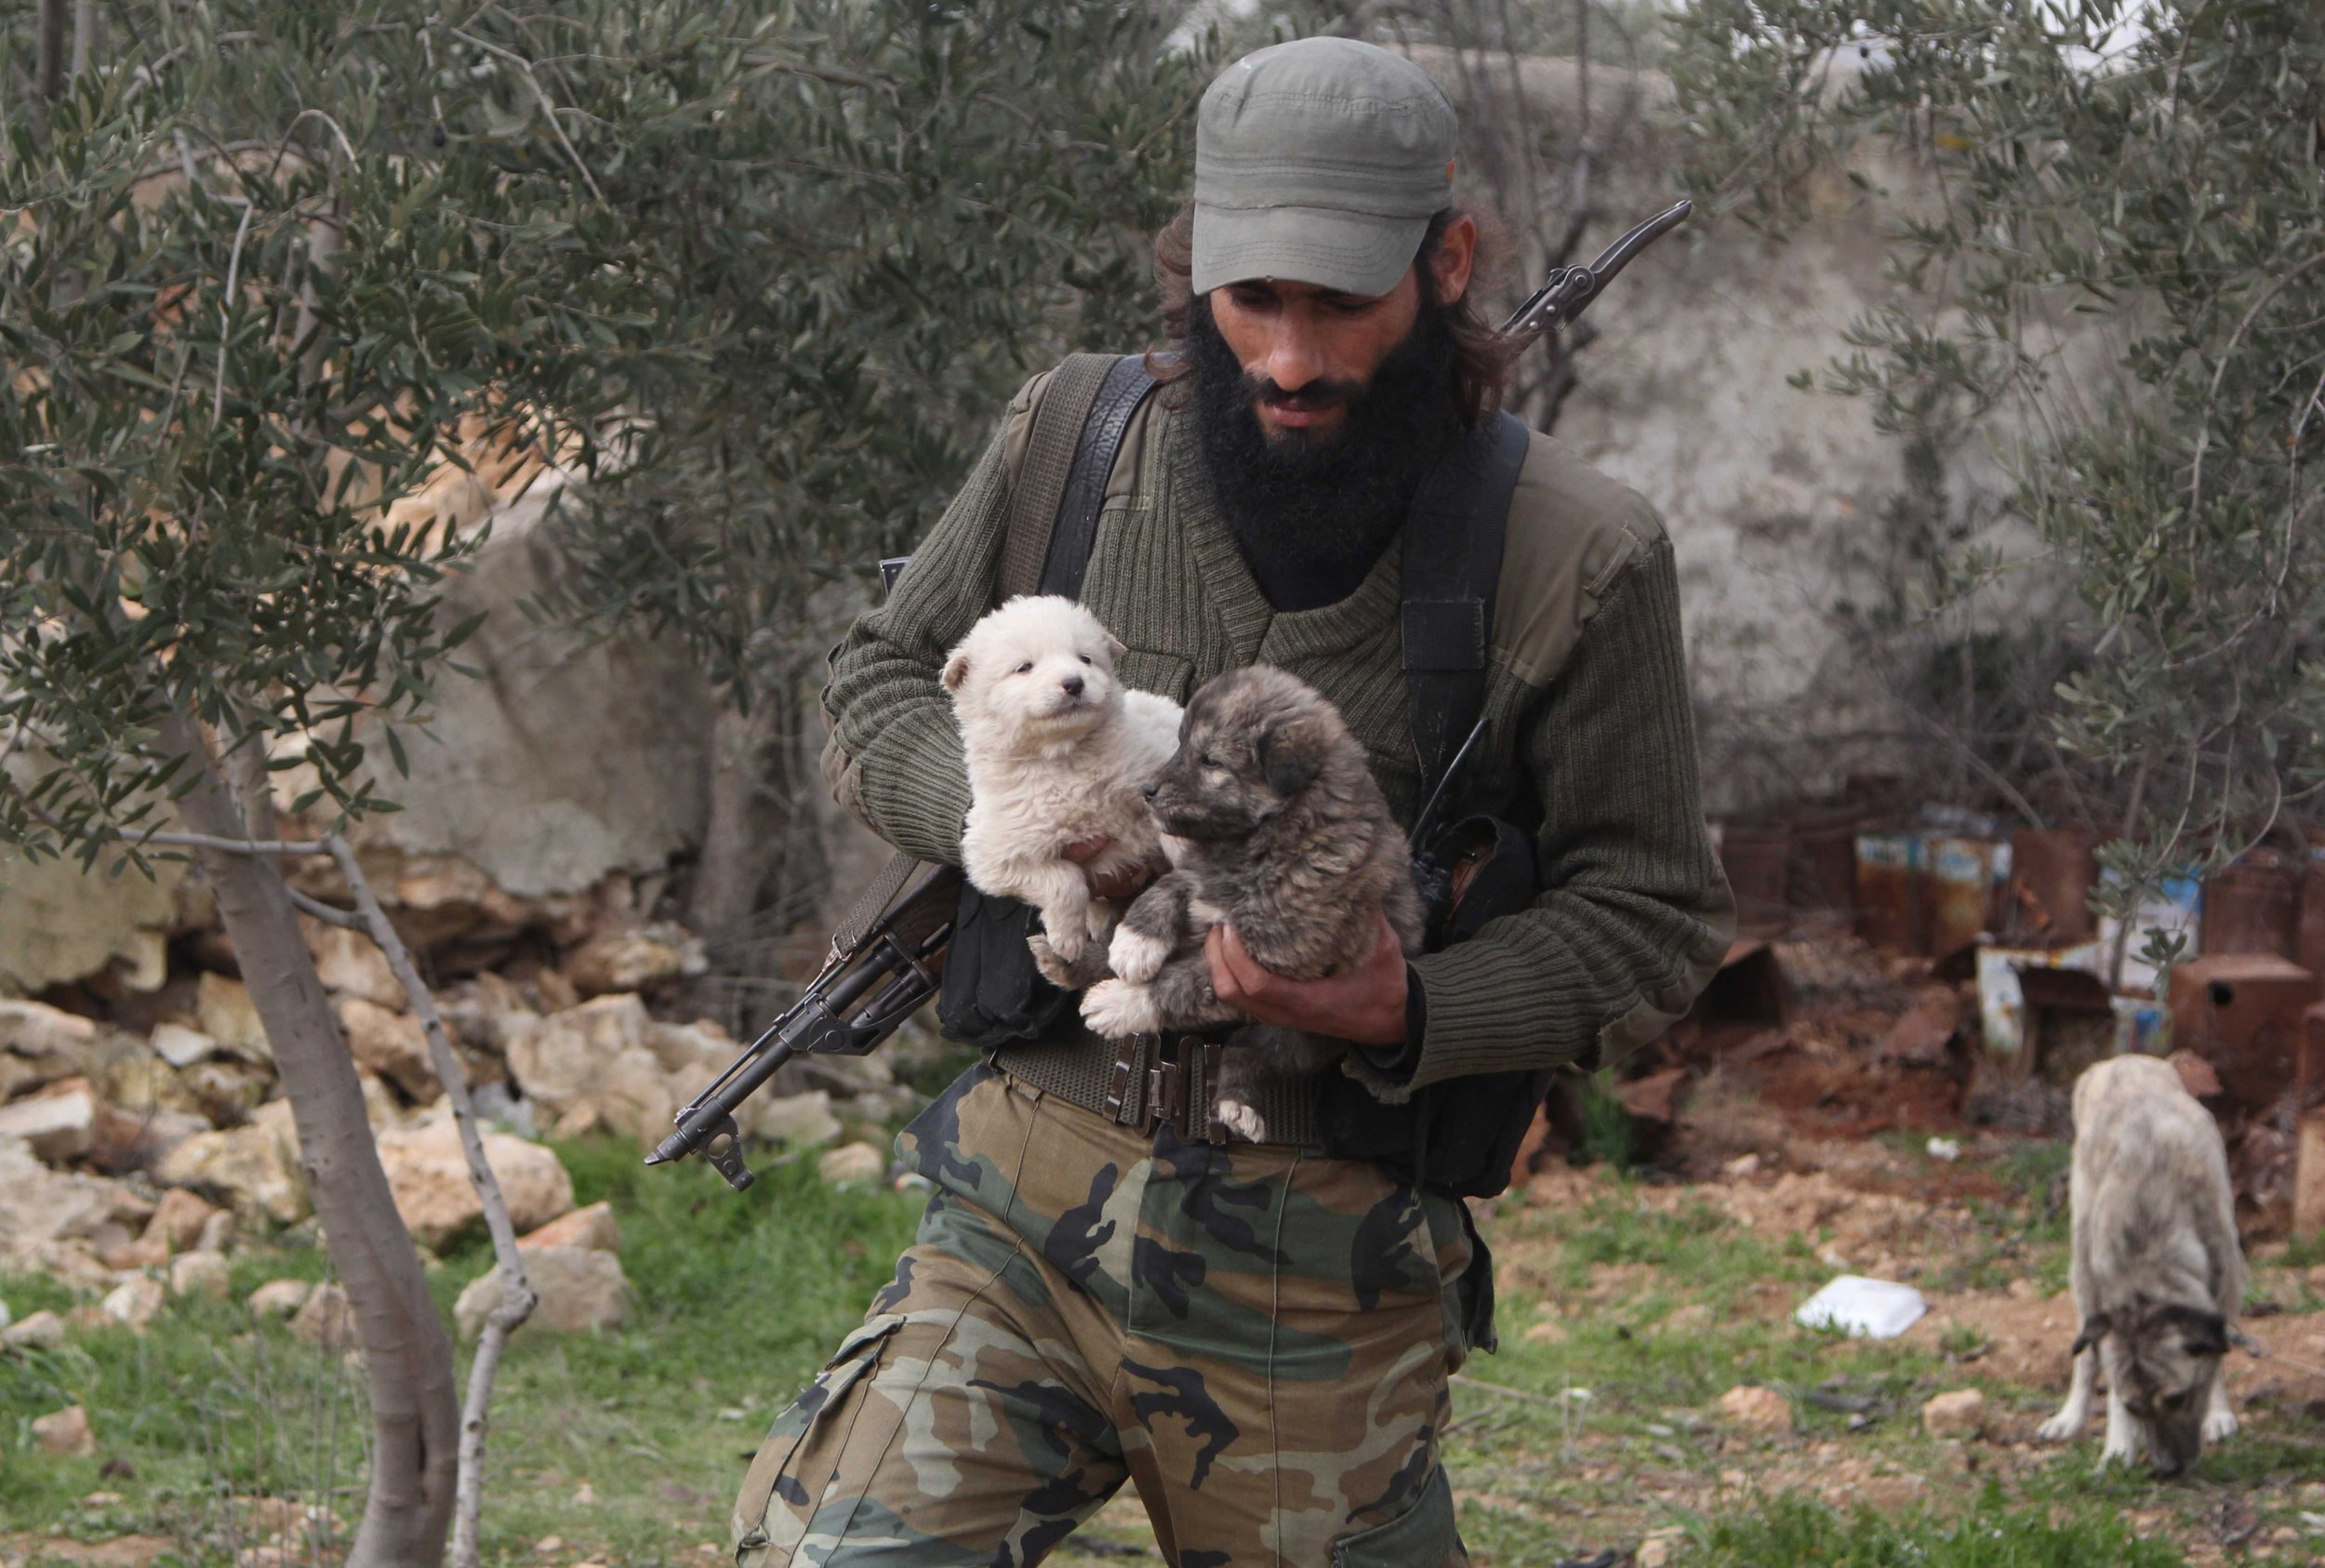 photos the free syrian army fighter who takes care of puppies